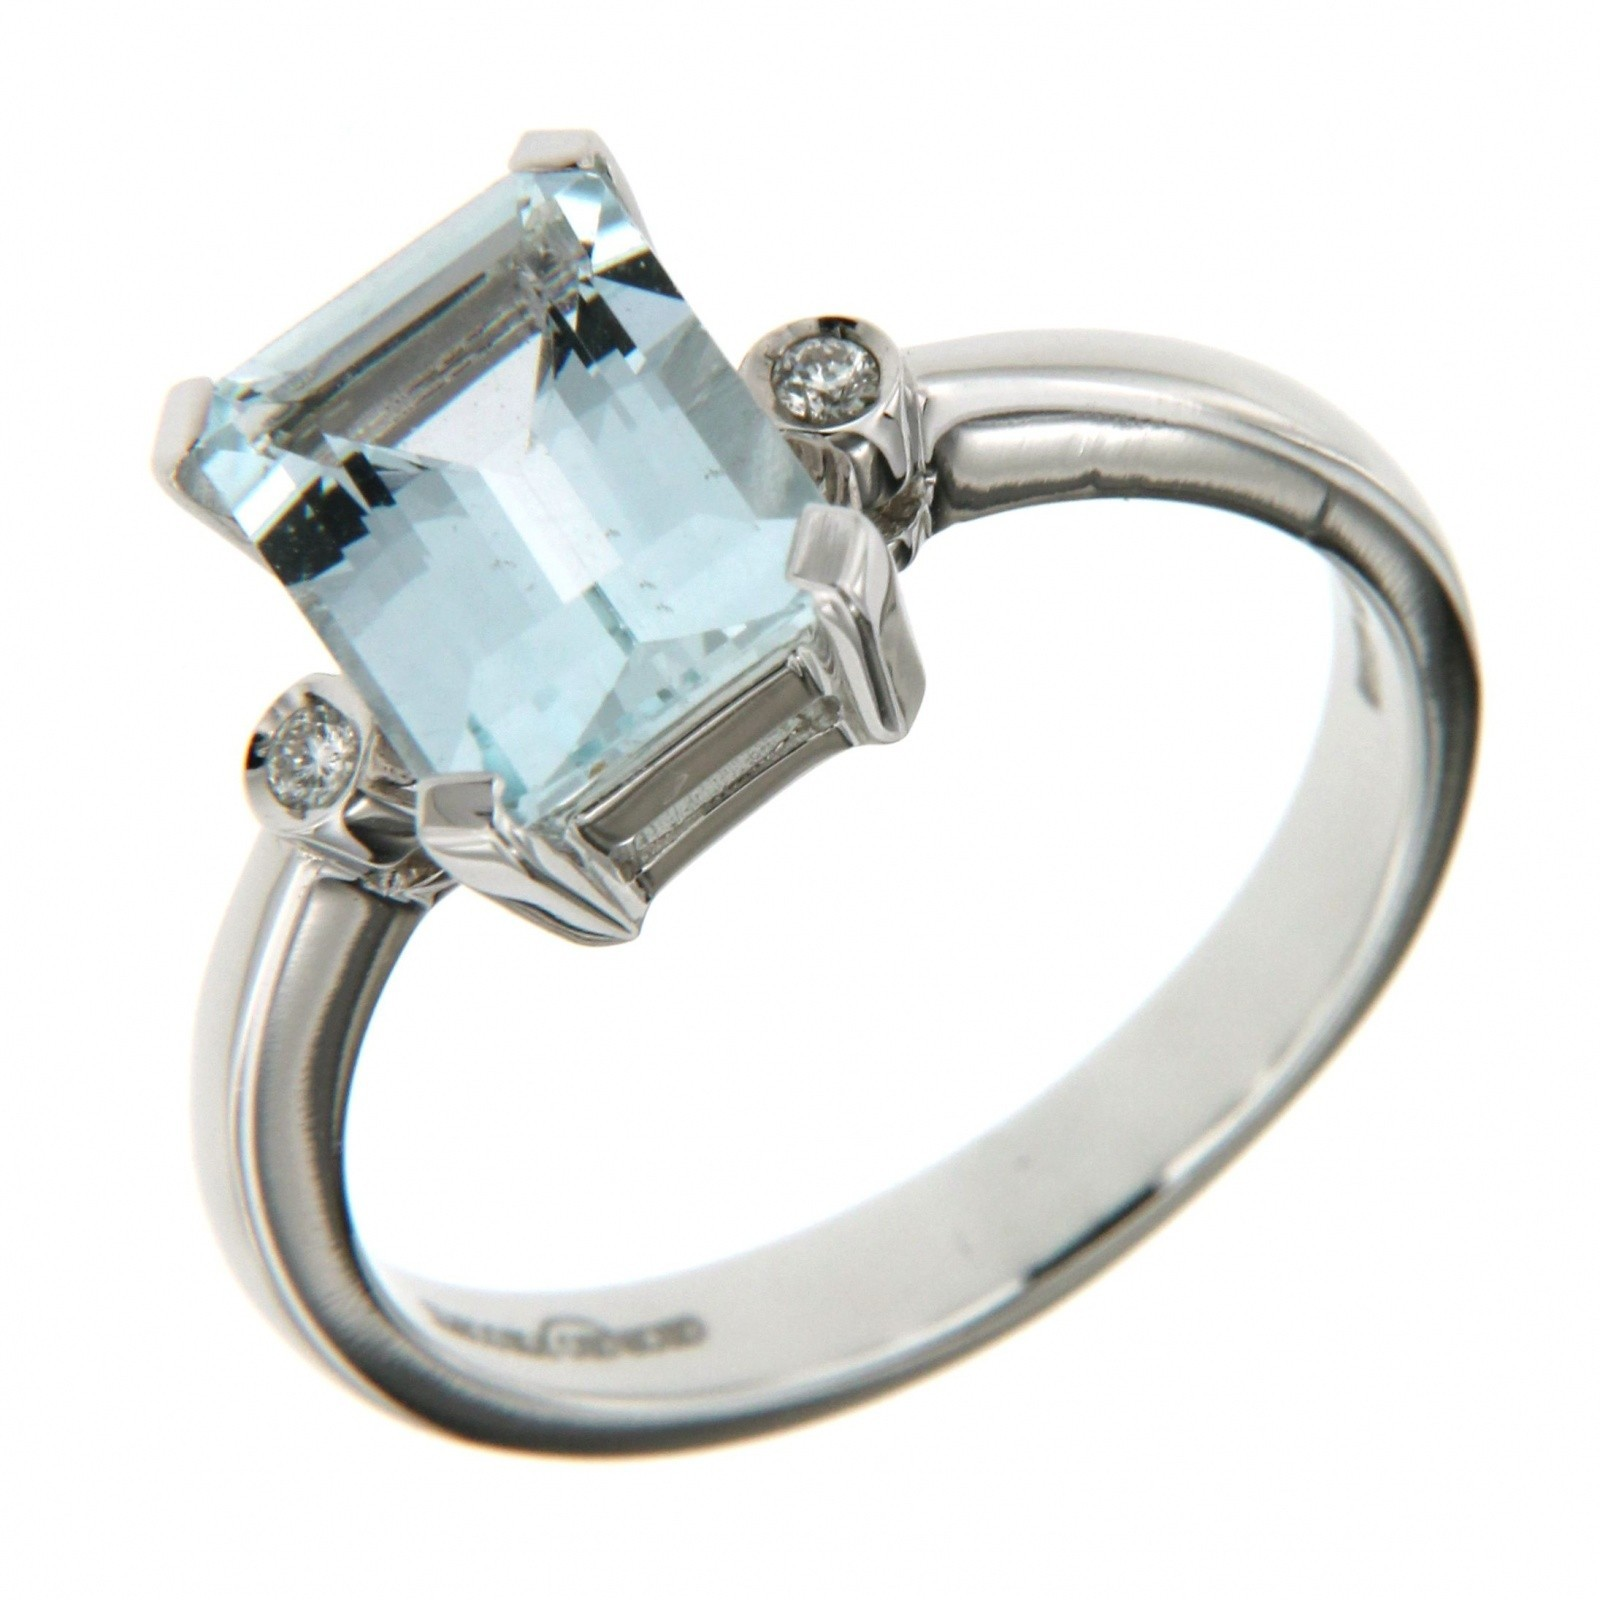 Anello Diamanti 0,09 ct e Acquamarina 2,02 ct